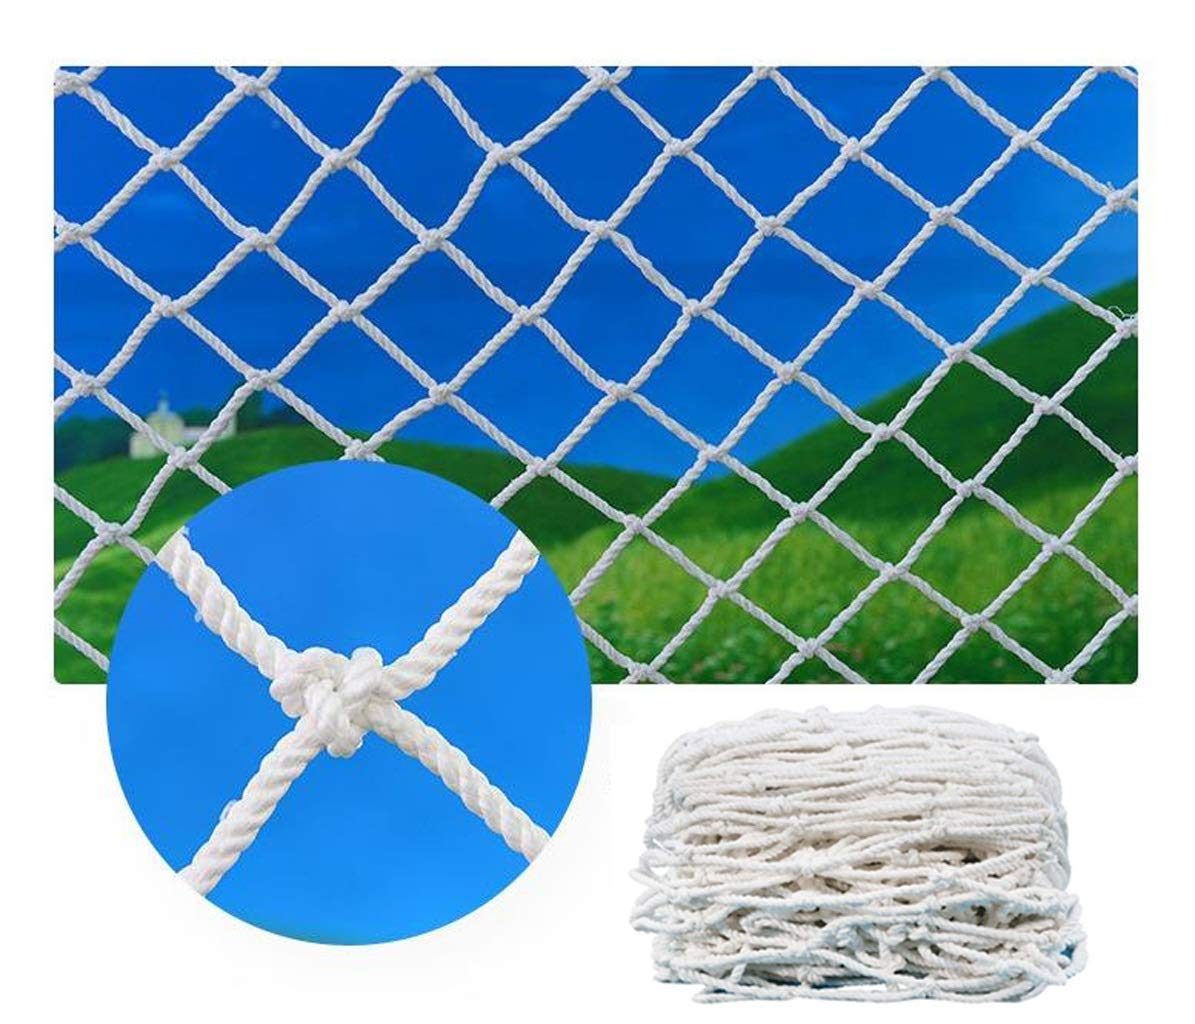 Multi-Function Protection Net Plant Climbing Rope Children's Stairs Balcony Safety Net Indoor and Outdoor Railing Fence Stairs Cat Pet Dog Hanging Clothes Retro Bar Decoration White (Size : 2x8m) by BHH-protection net